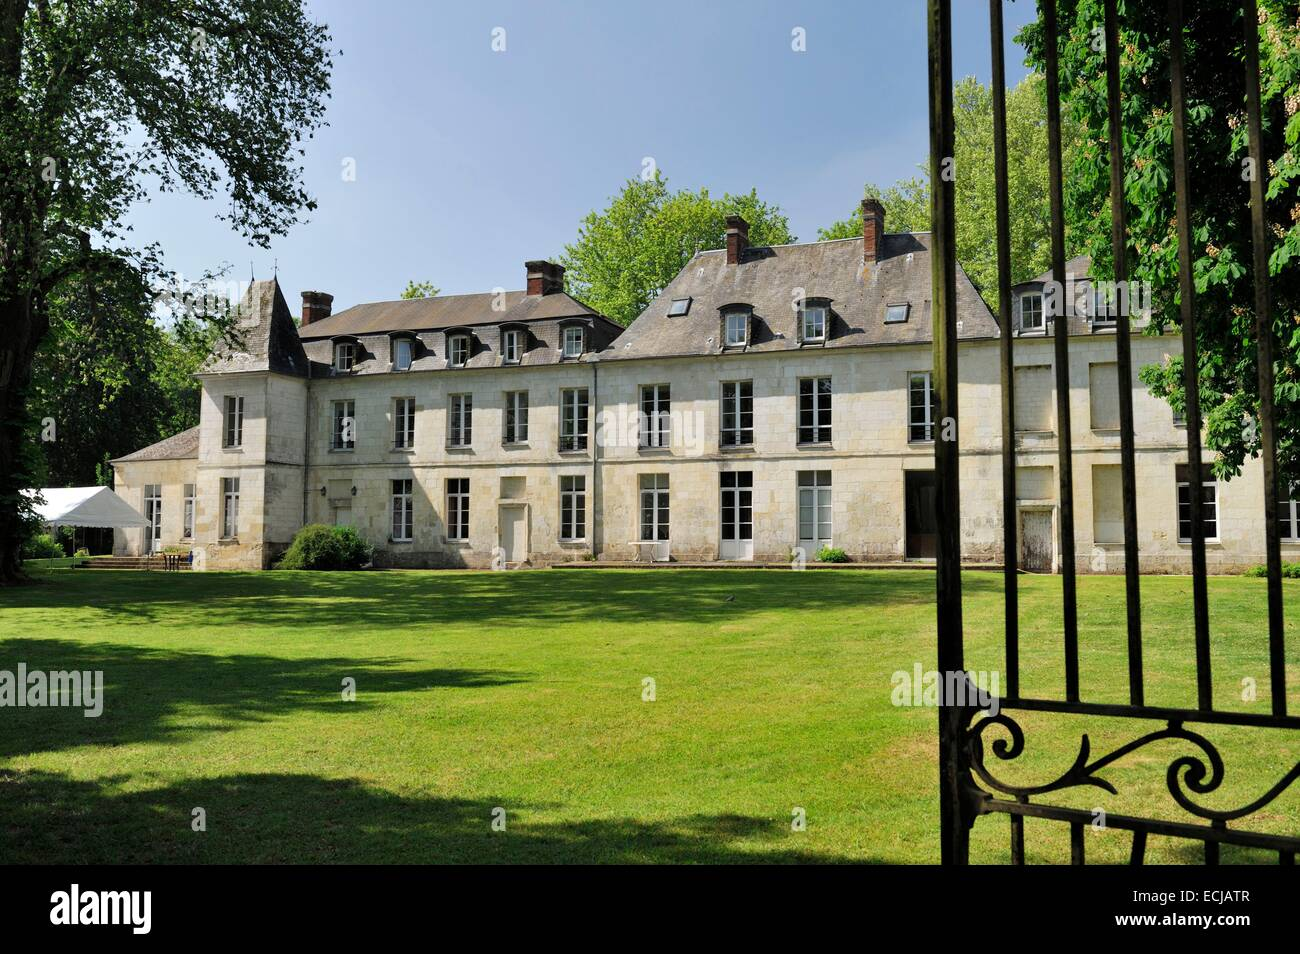 16th Century French Home - france-oise-ravenel-castle-from-the-16th-century-ECJATR_Best 16th Century French Home - france-oise-ravenel-castle-from-the-16th-century-ECJATR  Best Photo Reference_188230.jpg